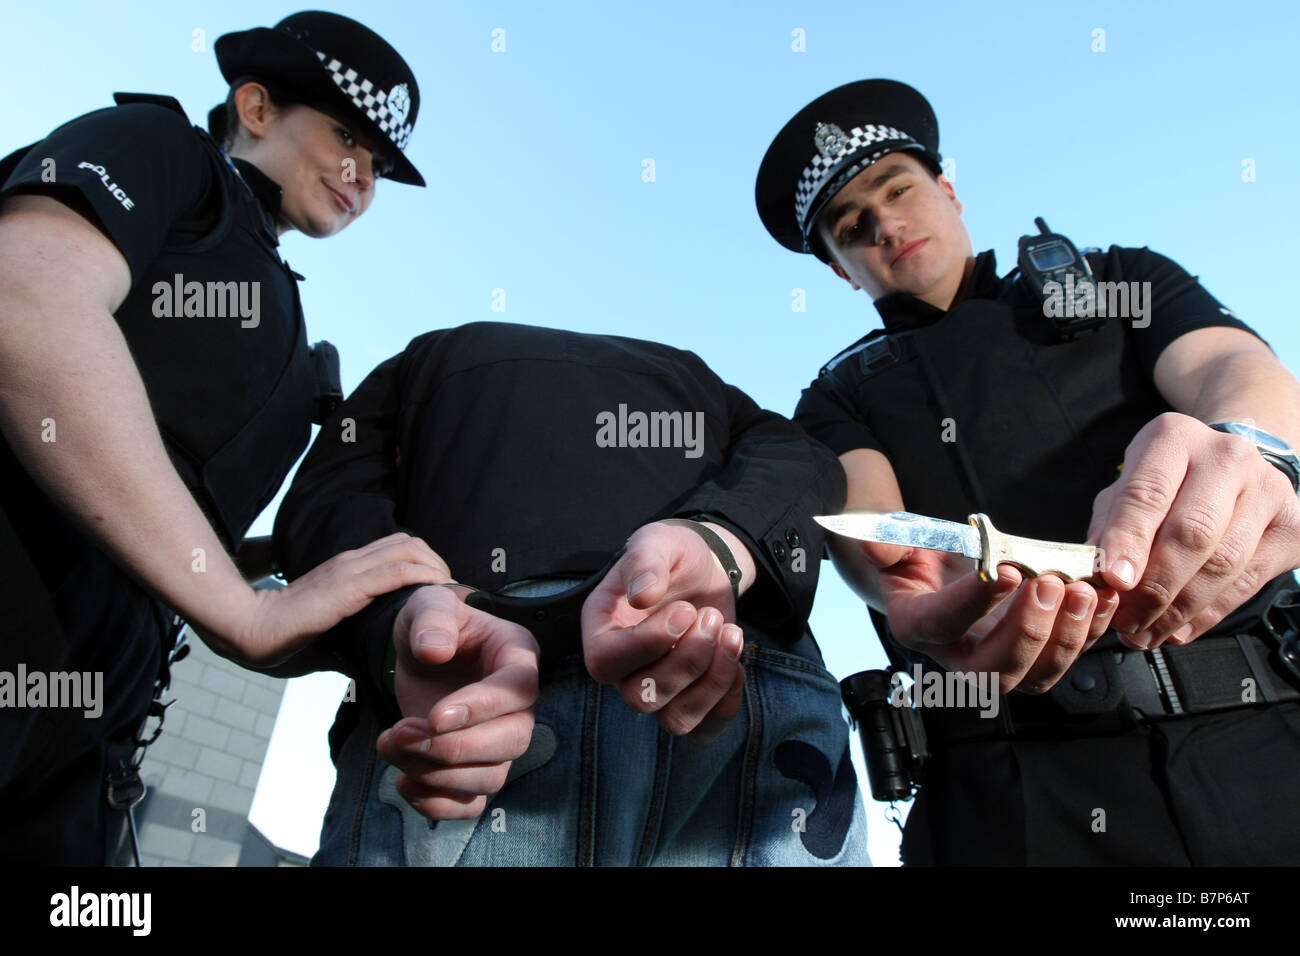 Grampian Police officers from Aberdeen, Scotland, UK, train to remove a bladed weapon from a suspect in handcuffs - Stock Image